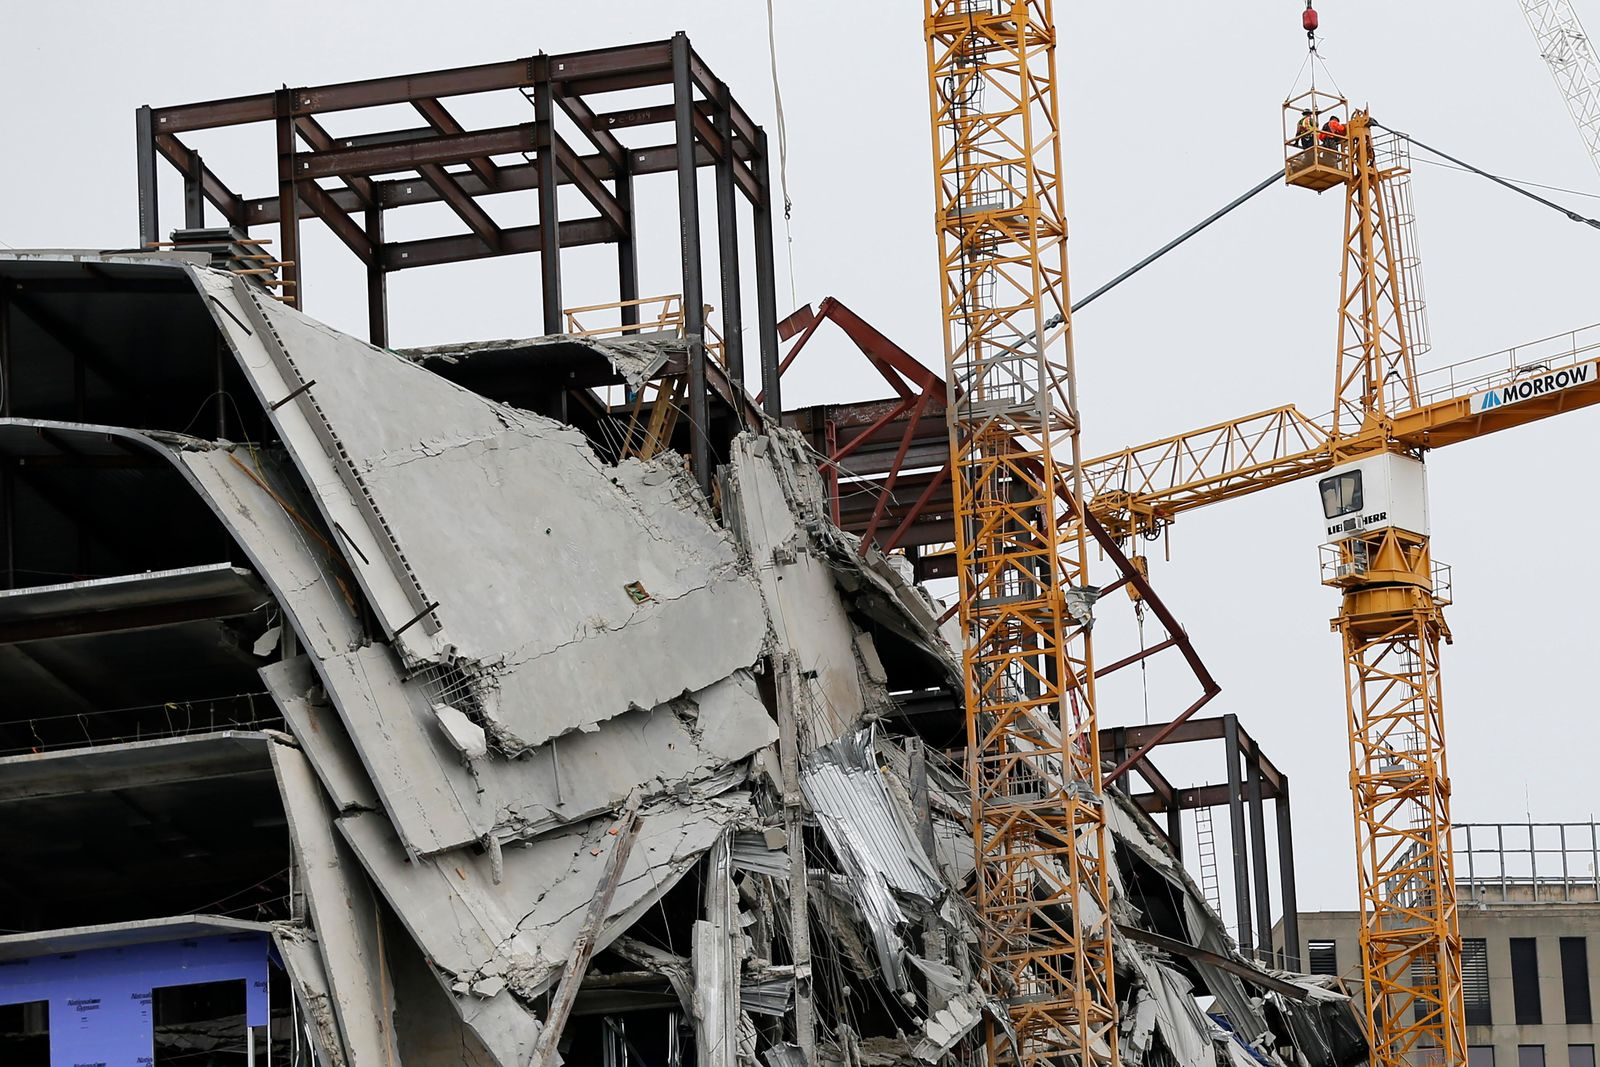 Workers begin the process of preparing the two unstable cranes for implosion at the collapse site of the Hard Rock Hotel, which underwent a partial, major collapse while under construction last Sat., Oct., 12, in New Orleans, Friday, Oct. 18, 2019. (AP Photo/Gerald Herbert)